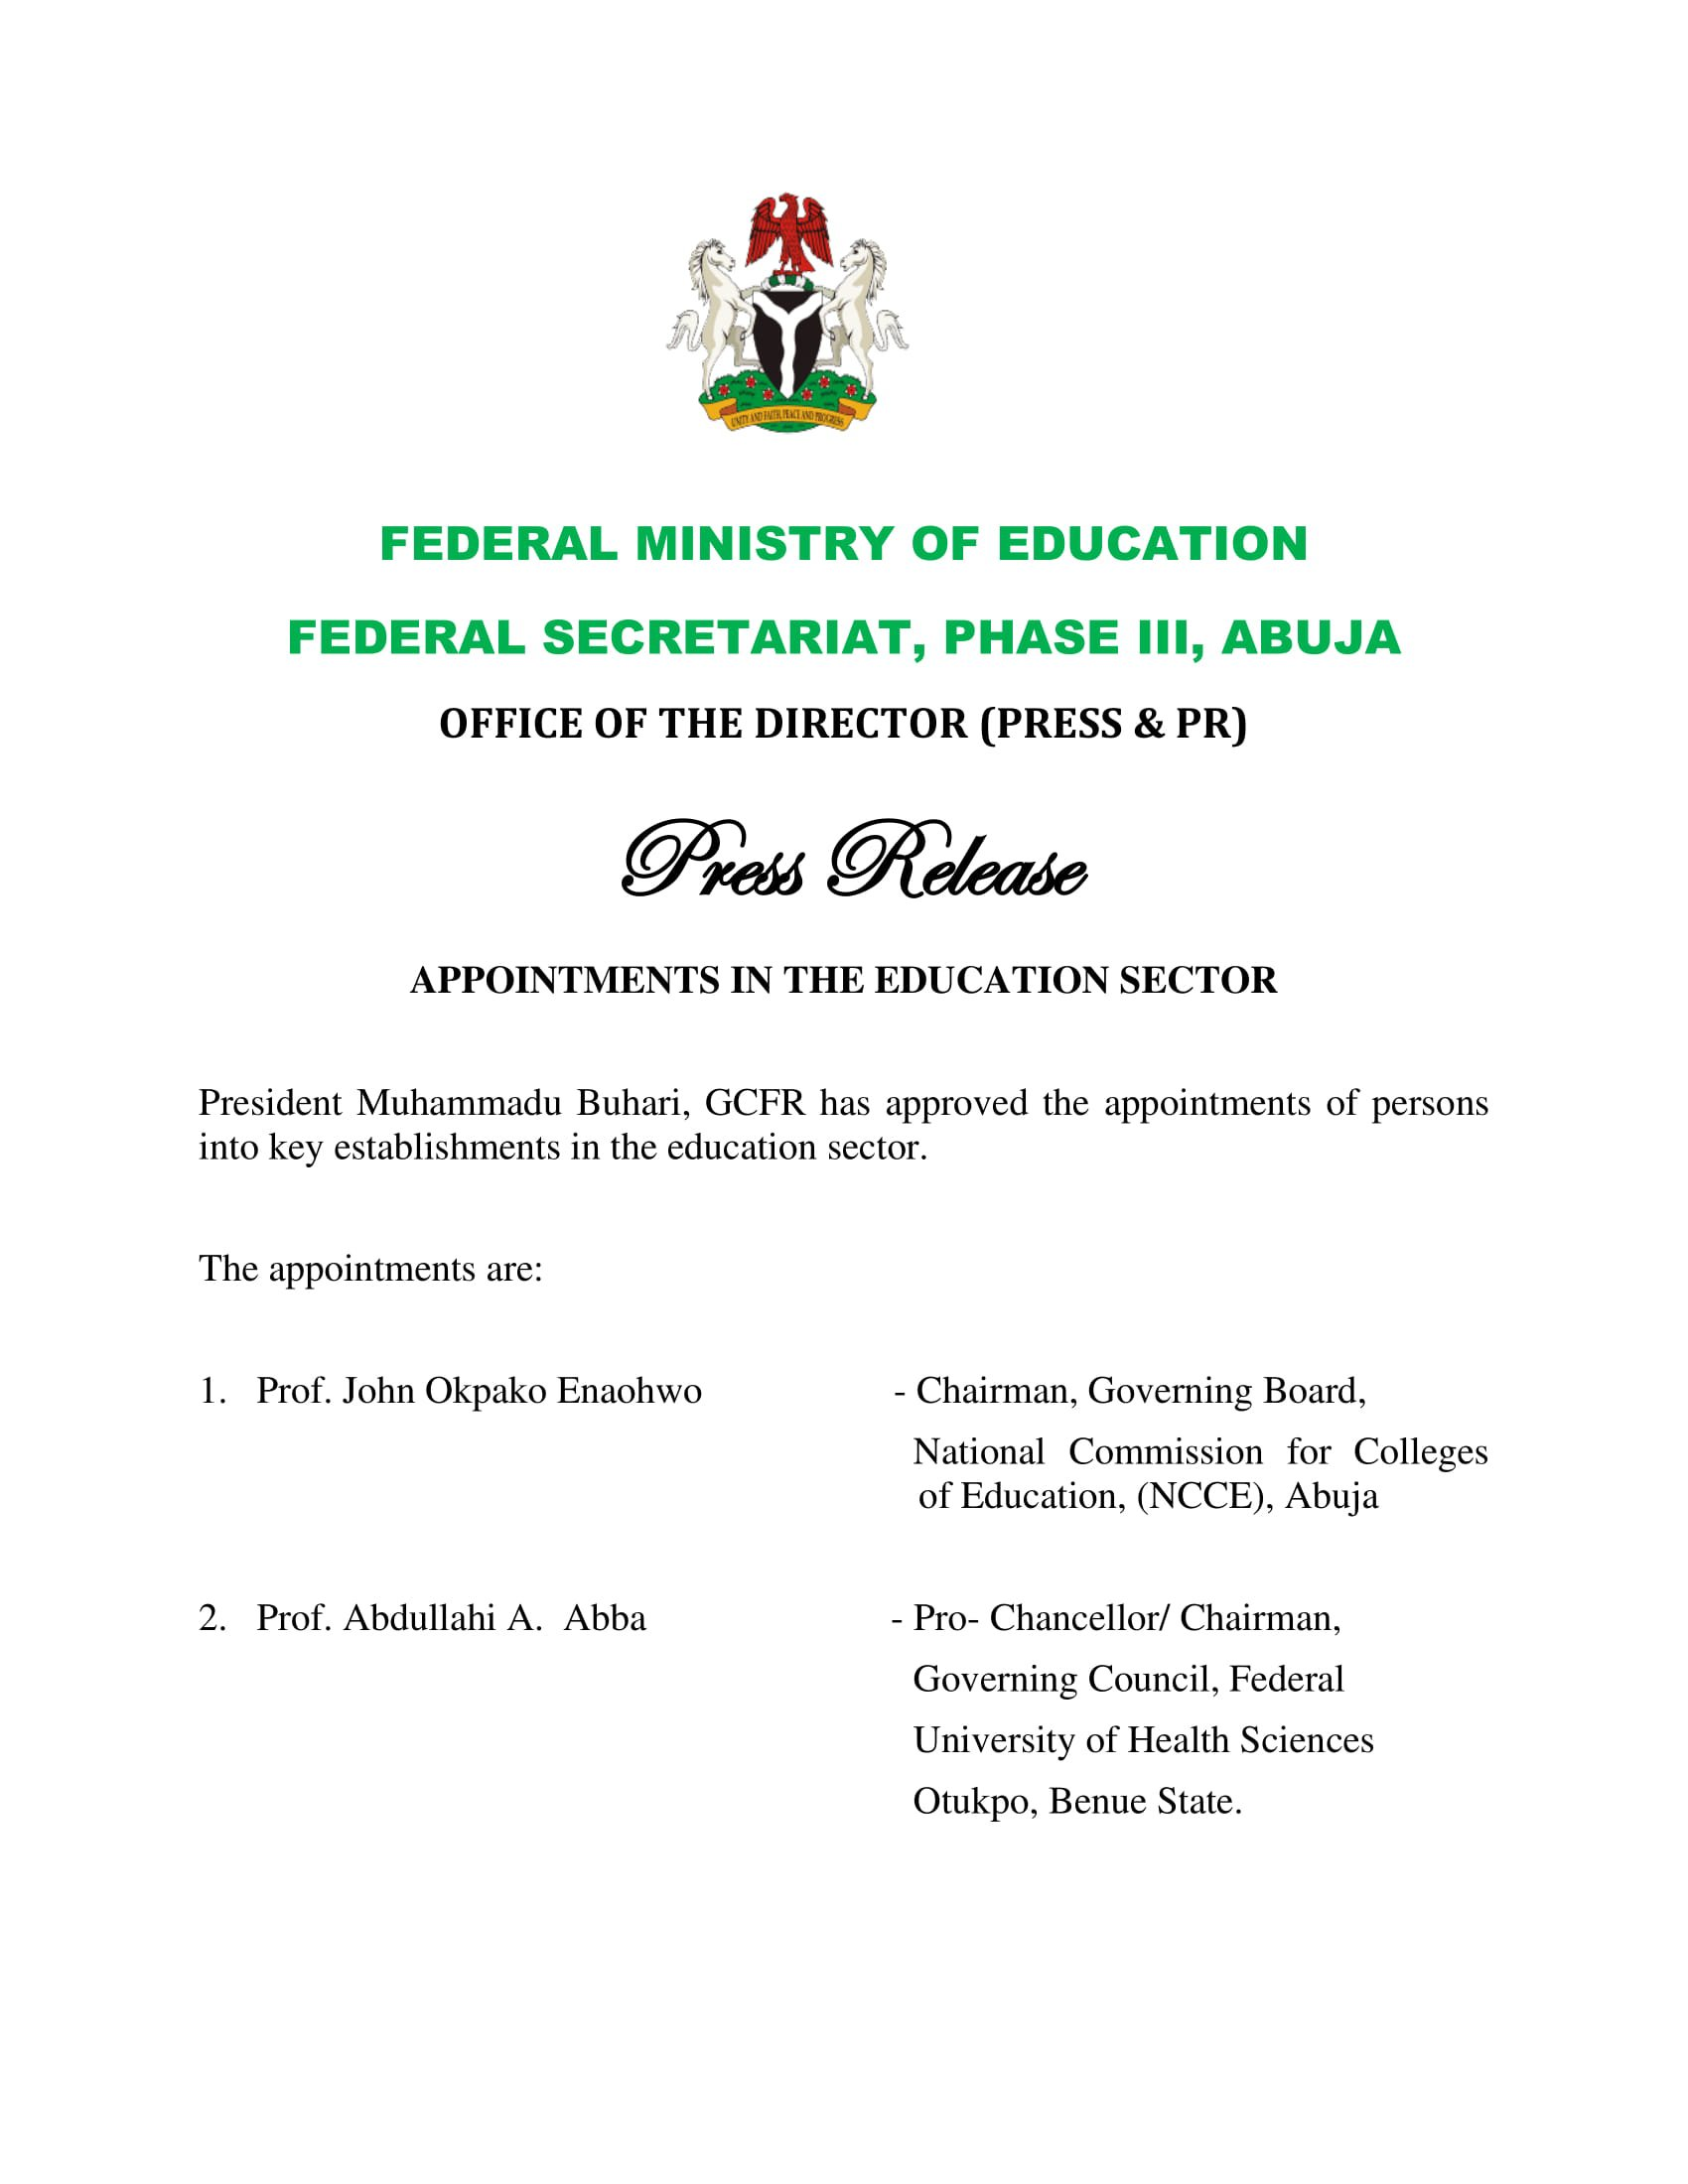 Buhari appoints persons in education sector